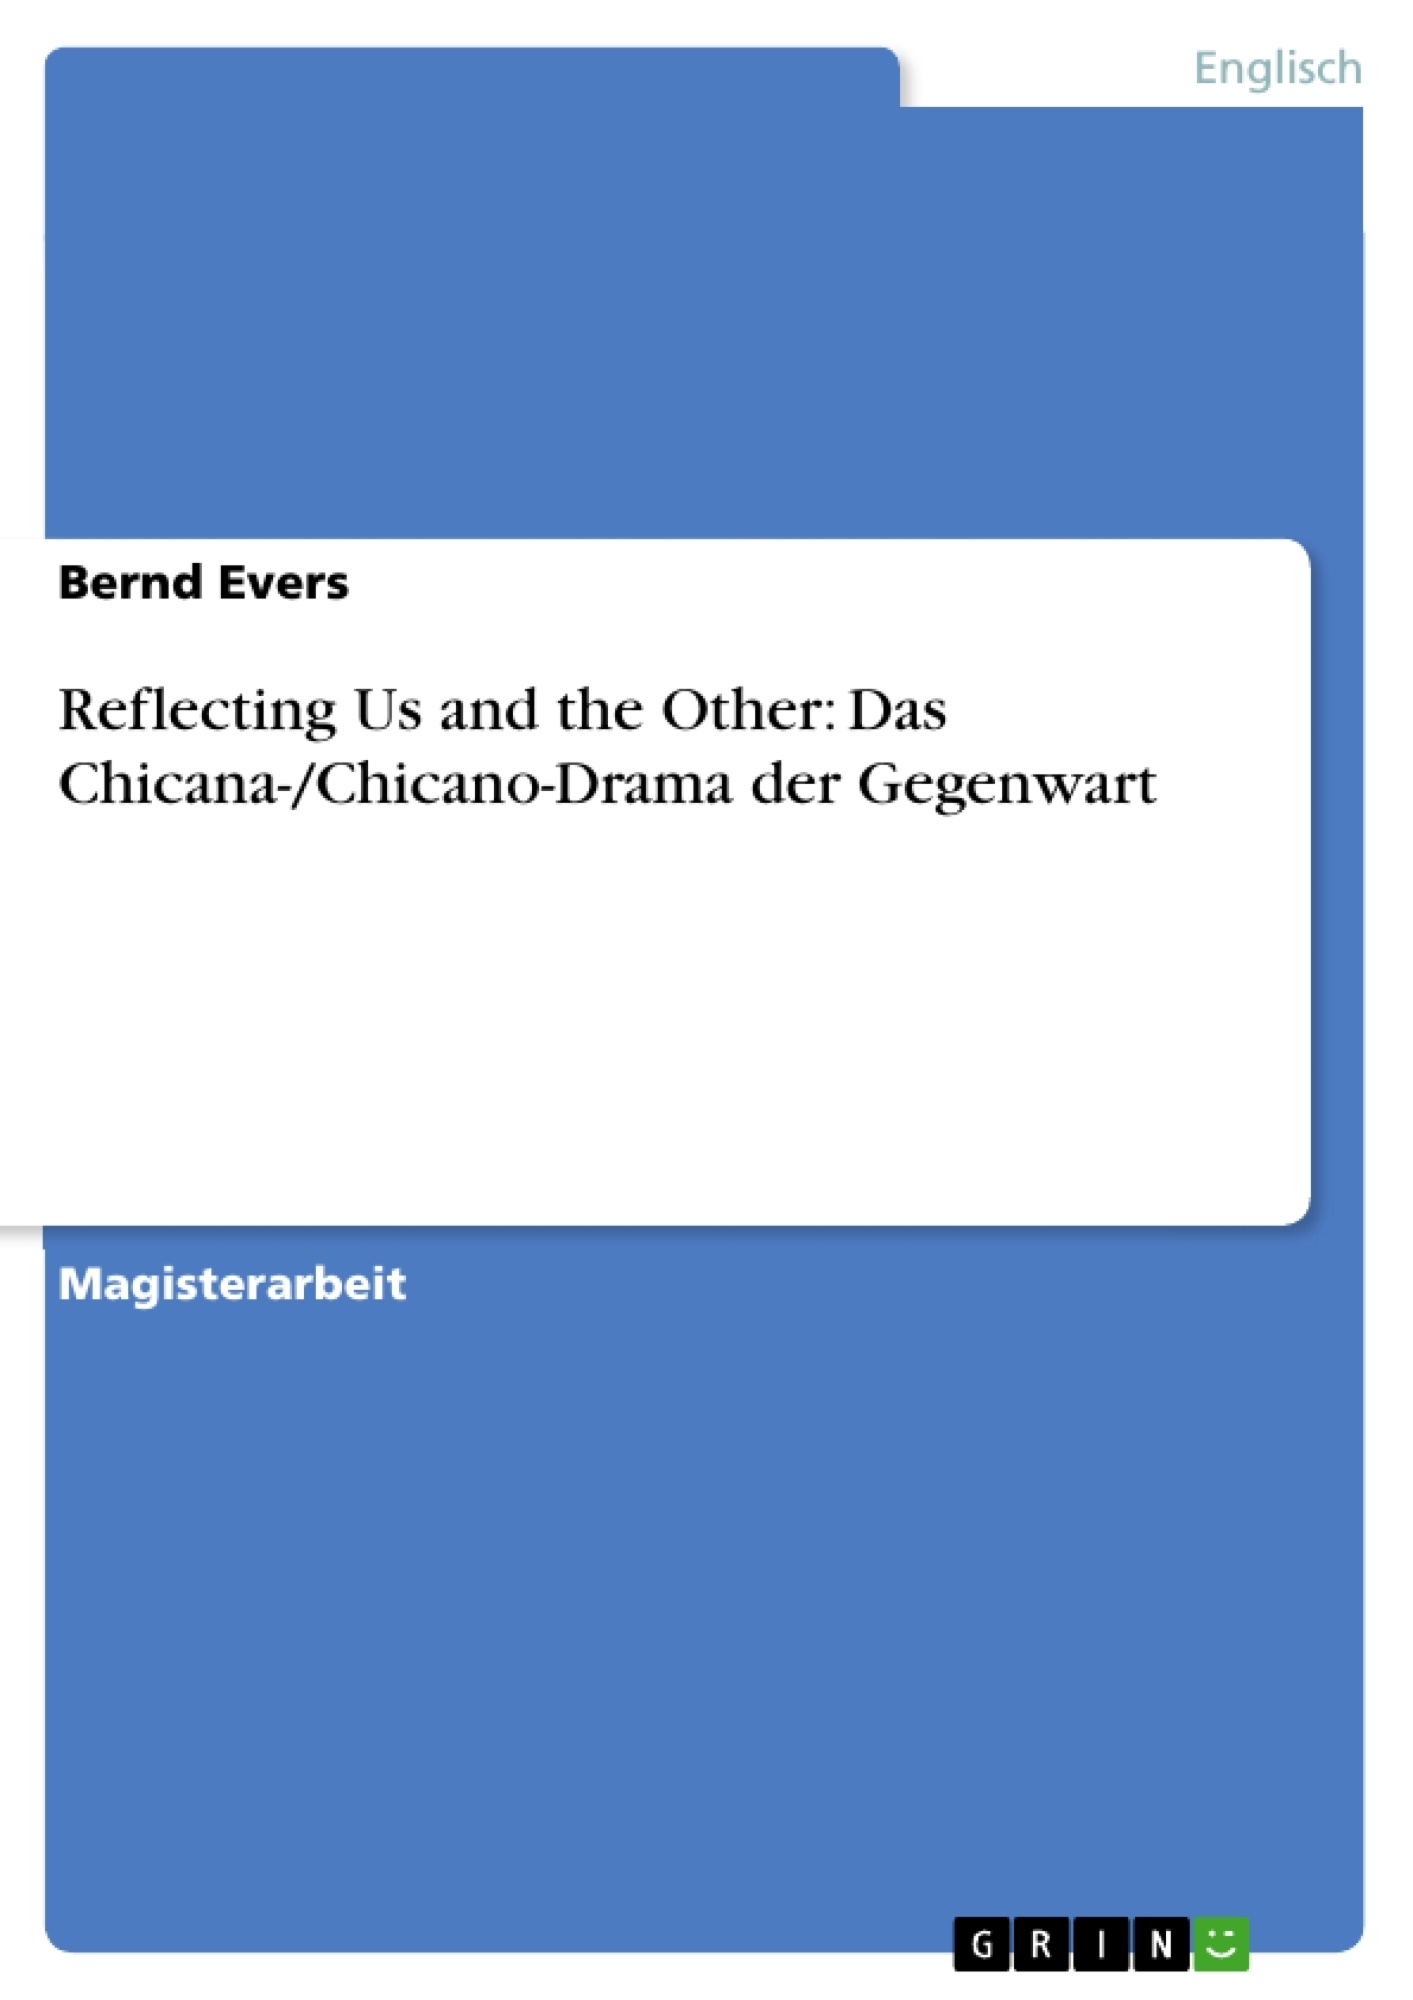 Titel: Reflecting Us and the Other: Das Chicana-/Chicano-Drama der Gegenwart